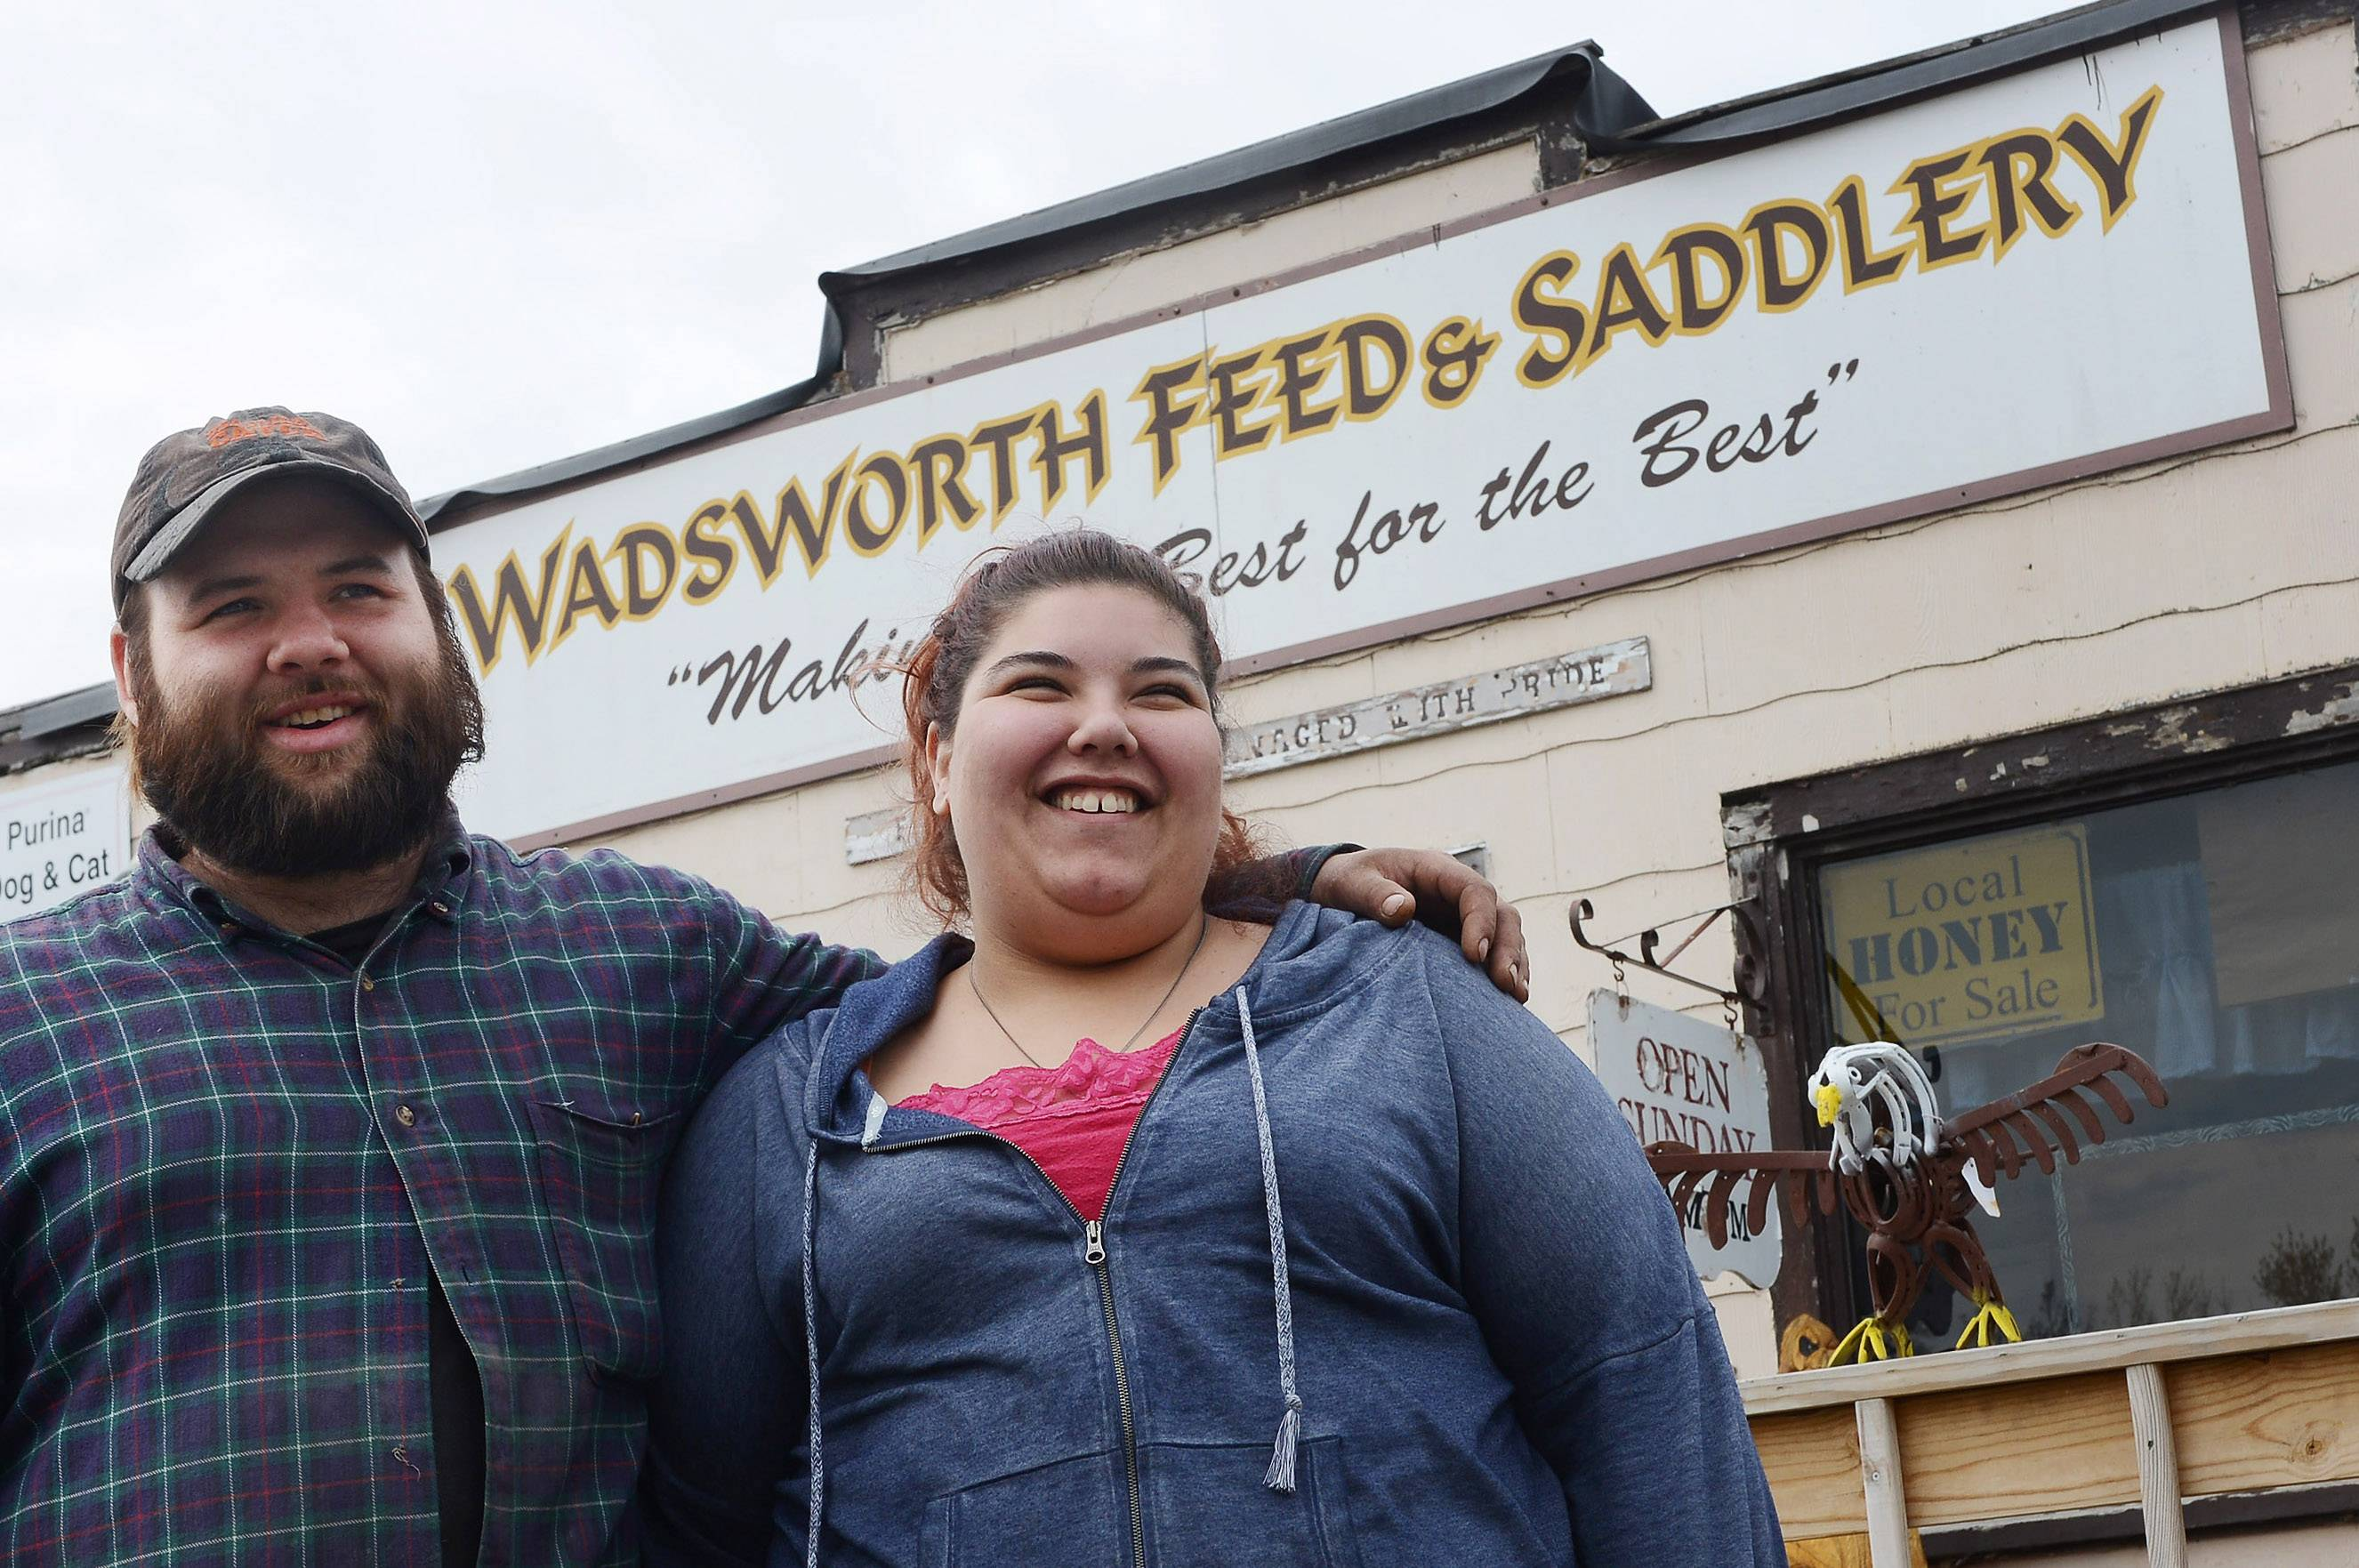 Josie Hays met her fianc�, Nick Mercer, at the Wadsworth Feed and Saddlery, which she manages as a family business. It turned out they share a passion for the feed business.